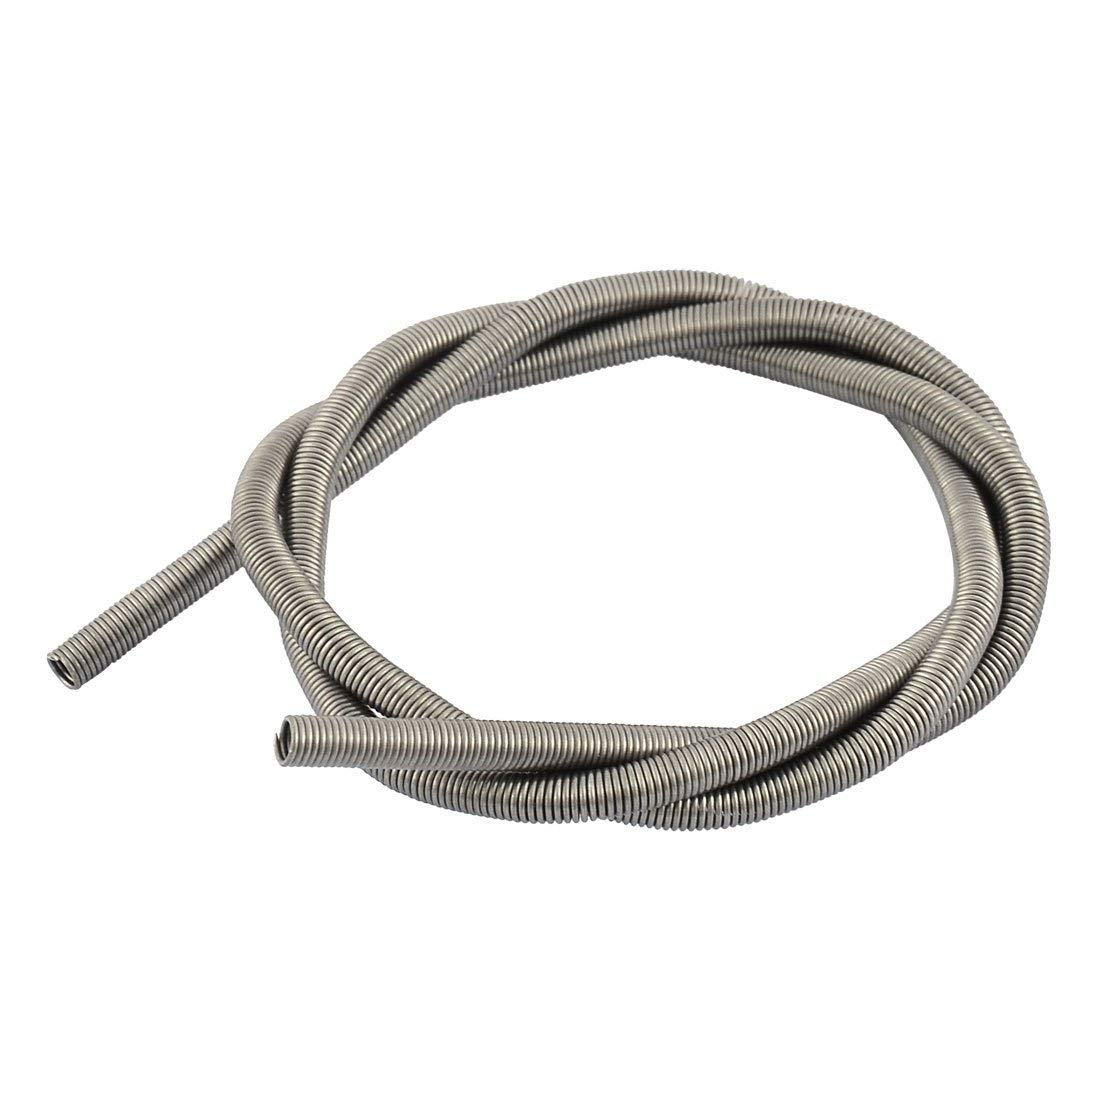 2500W Kilns Furnaces Casting Flexible Heating Element Coil Wire 71.5cm Long